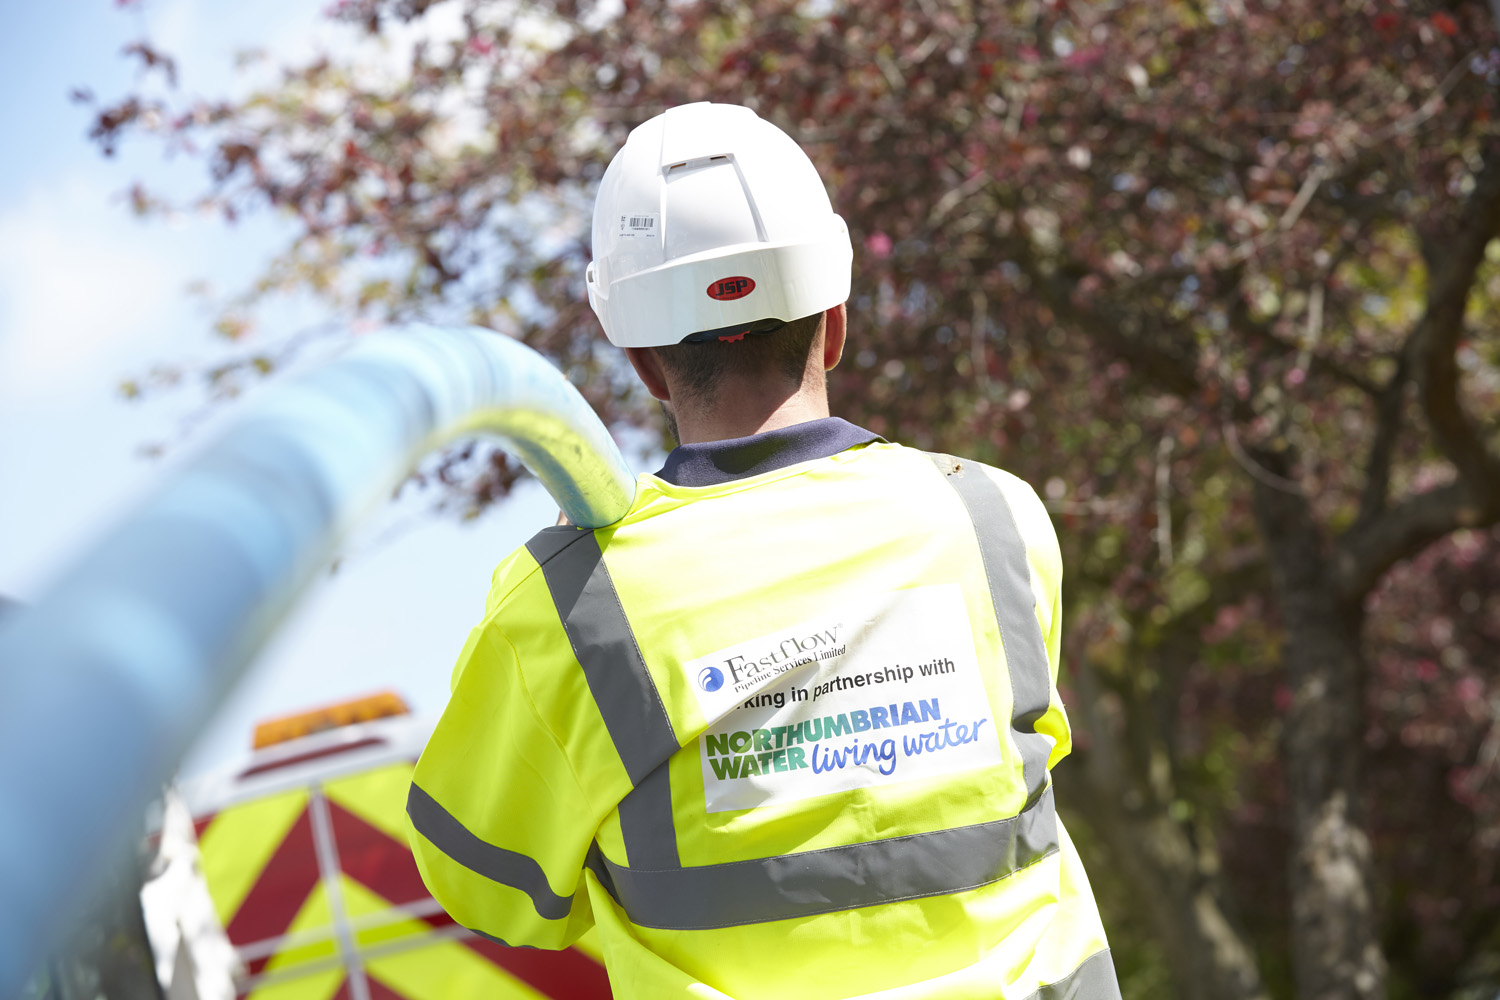 SCOPE: Fastflow Group provides infrastructure maintenance and improvement services to Northumbrian Water and Scottish Water